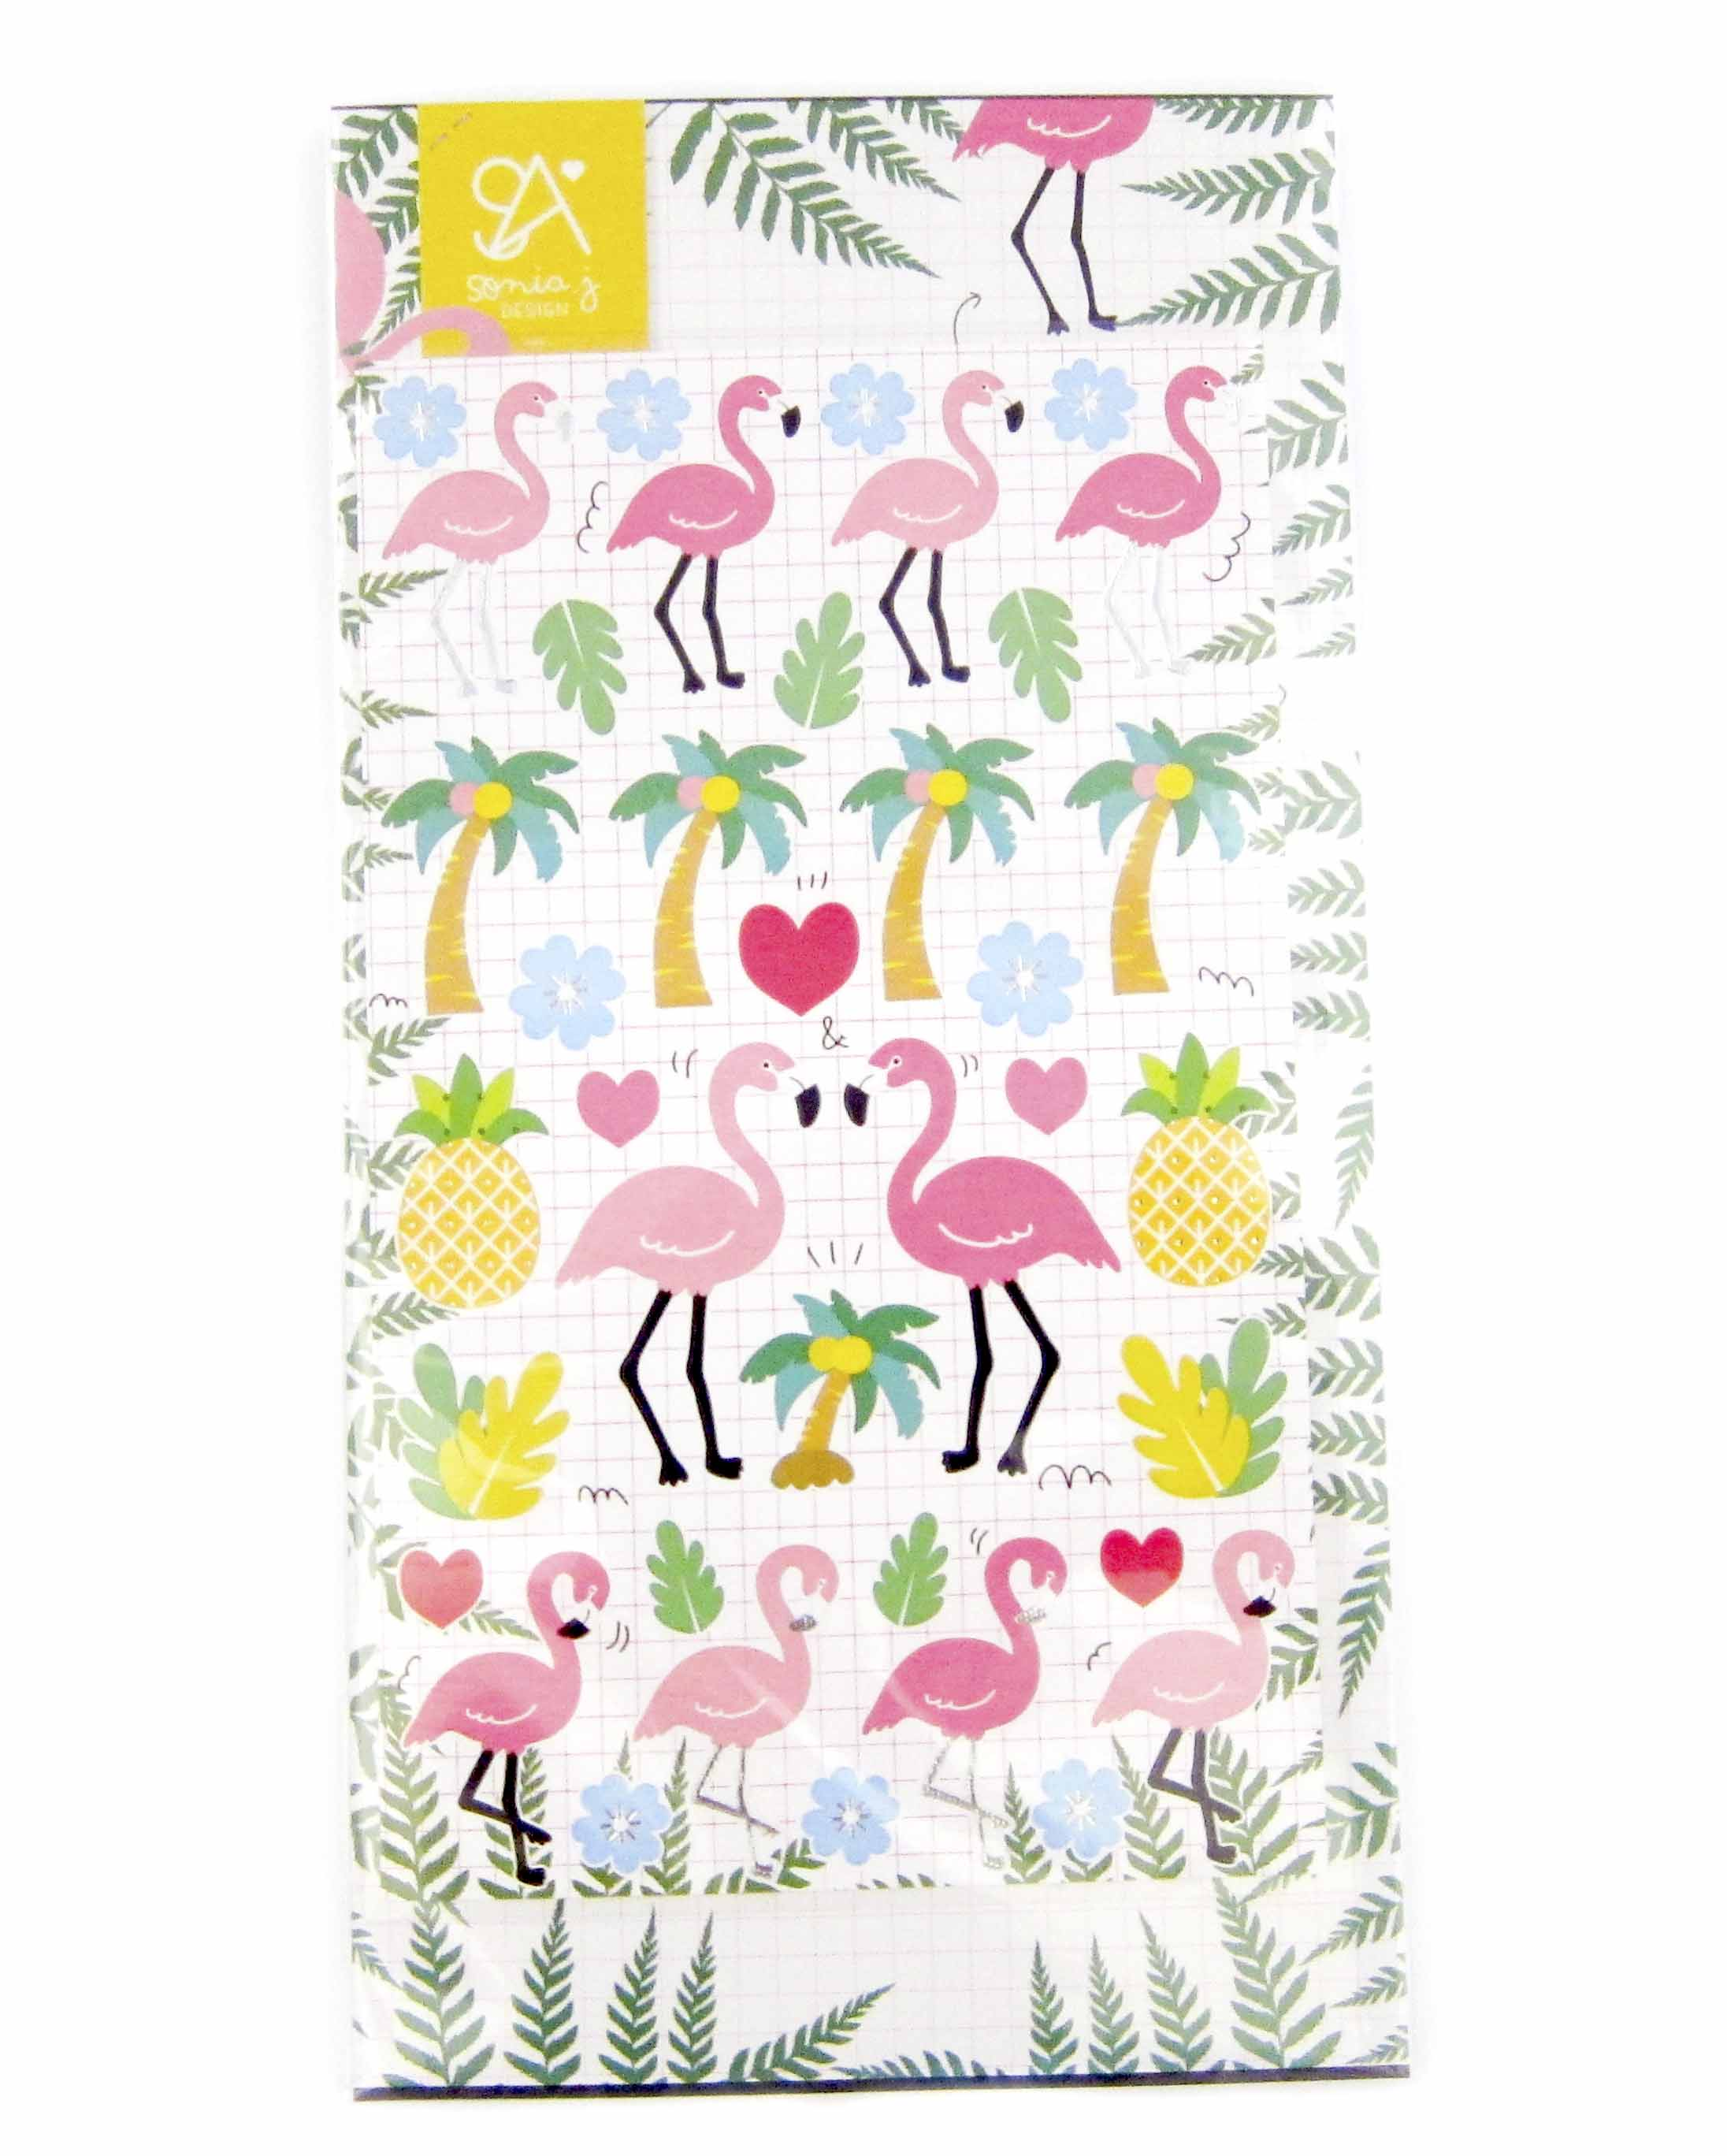 Panduh Box June 2016 Sonia J. Design Flamingo Stickers